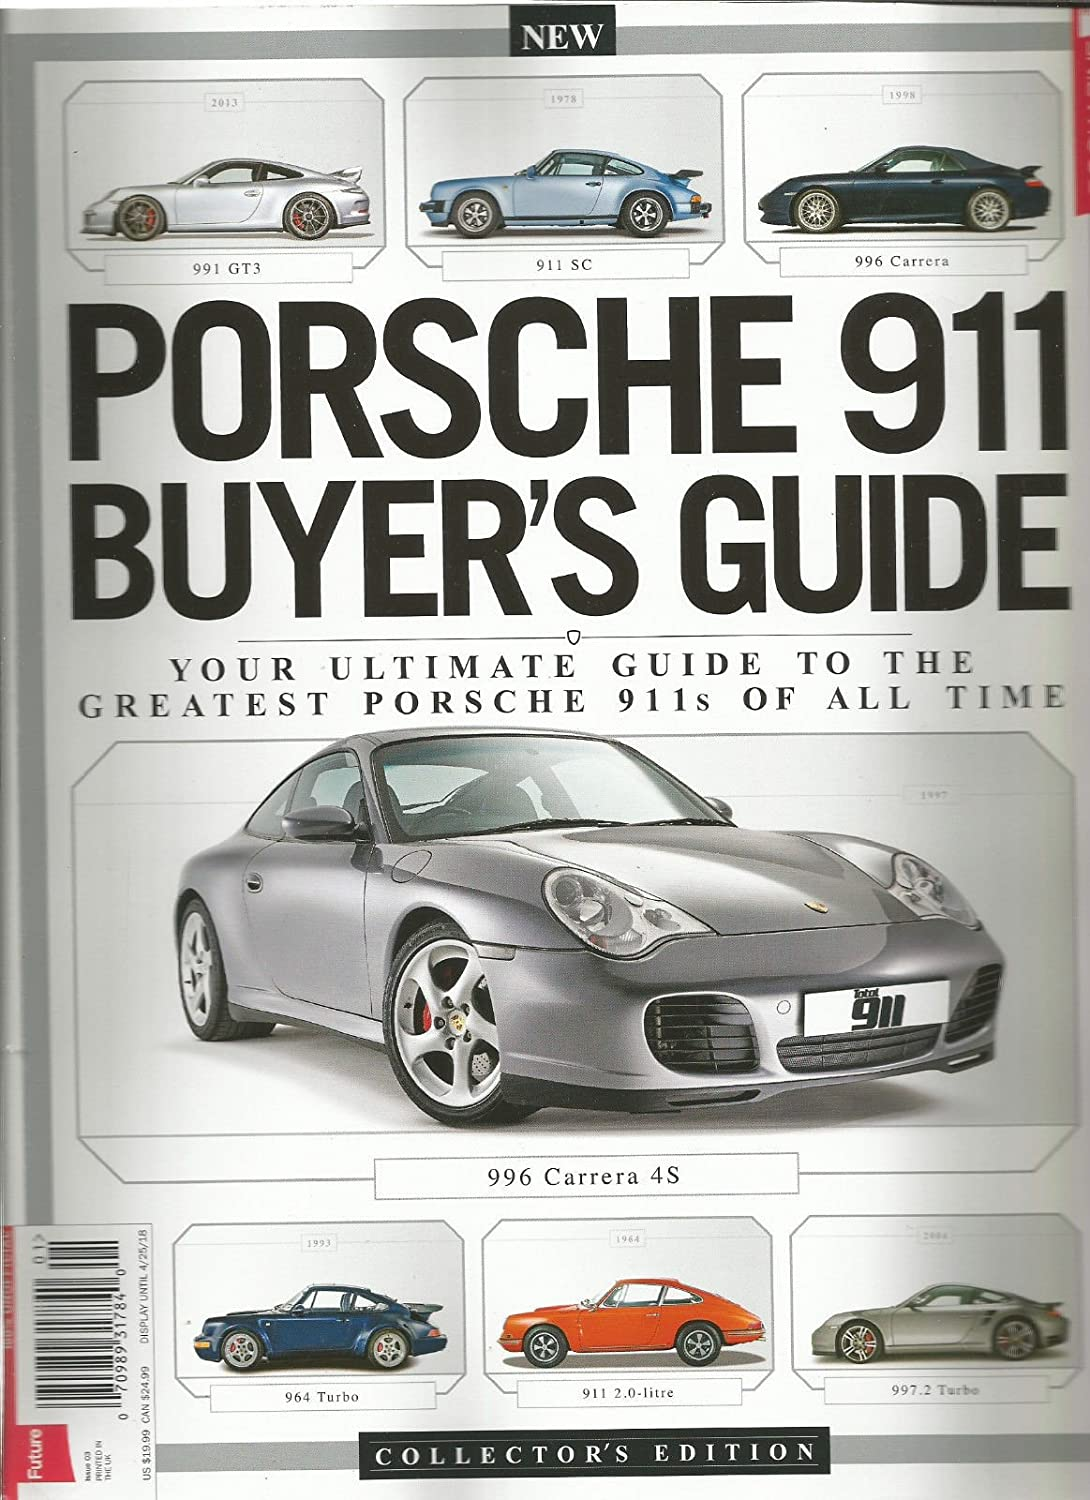 Amazon.com: PORSCHE 911 BUYERS GUIDE MAGAZINE COLLECTORS EDITION ISSUE 3 2018: Everything Else